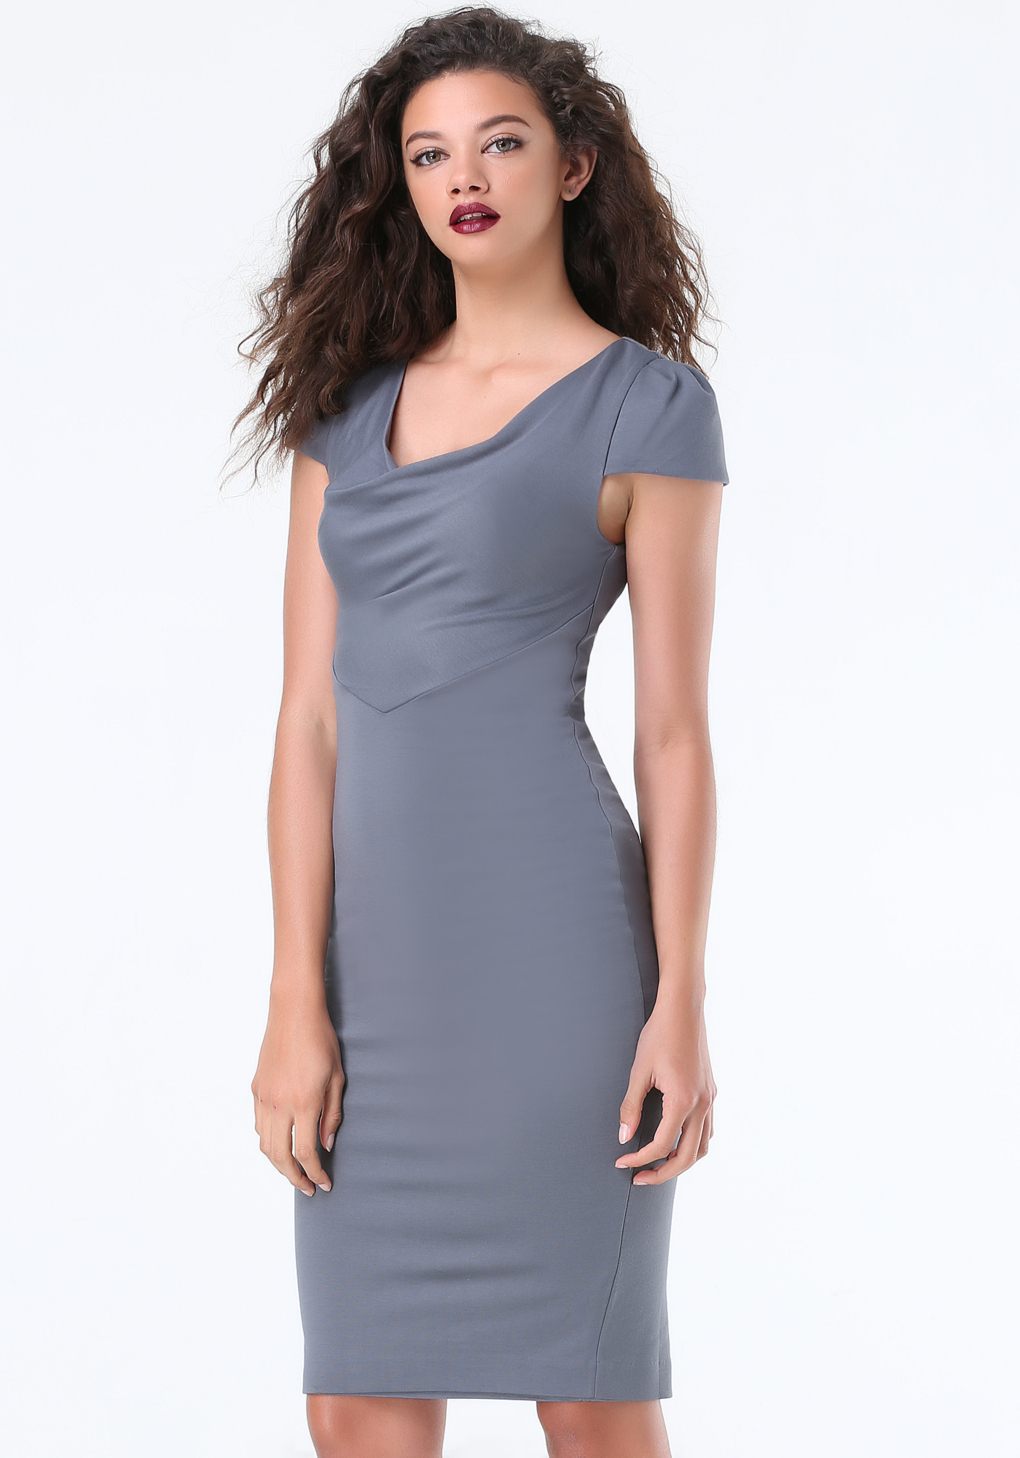 a616442eb108 Lyst - Bebe Cowl Neck Dress in Gray